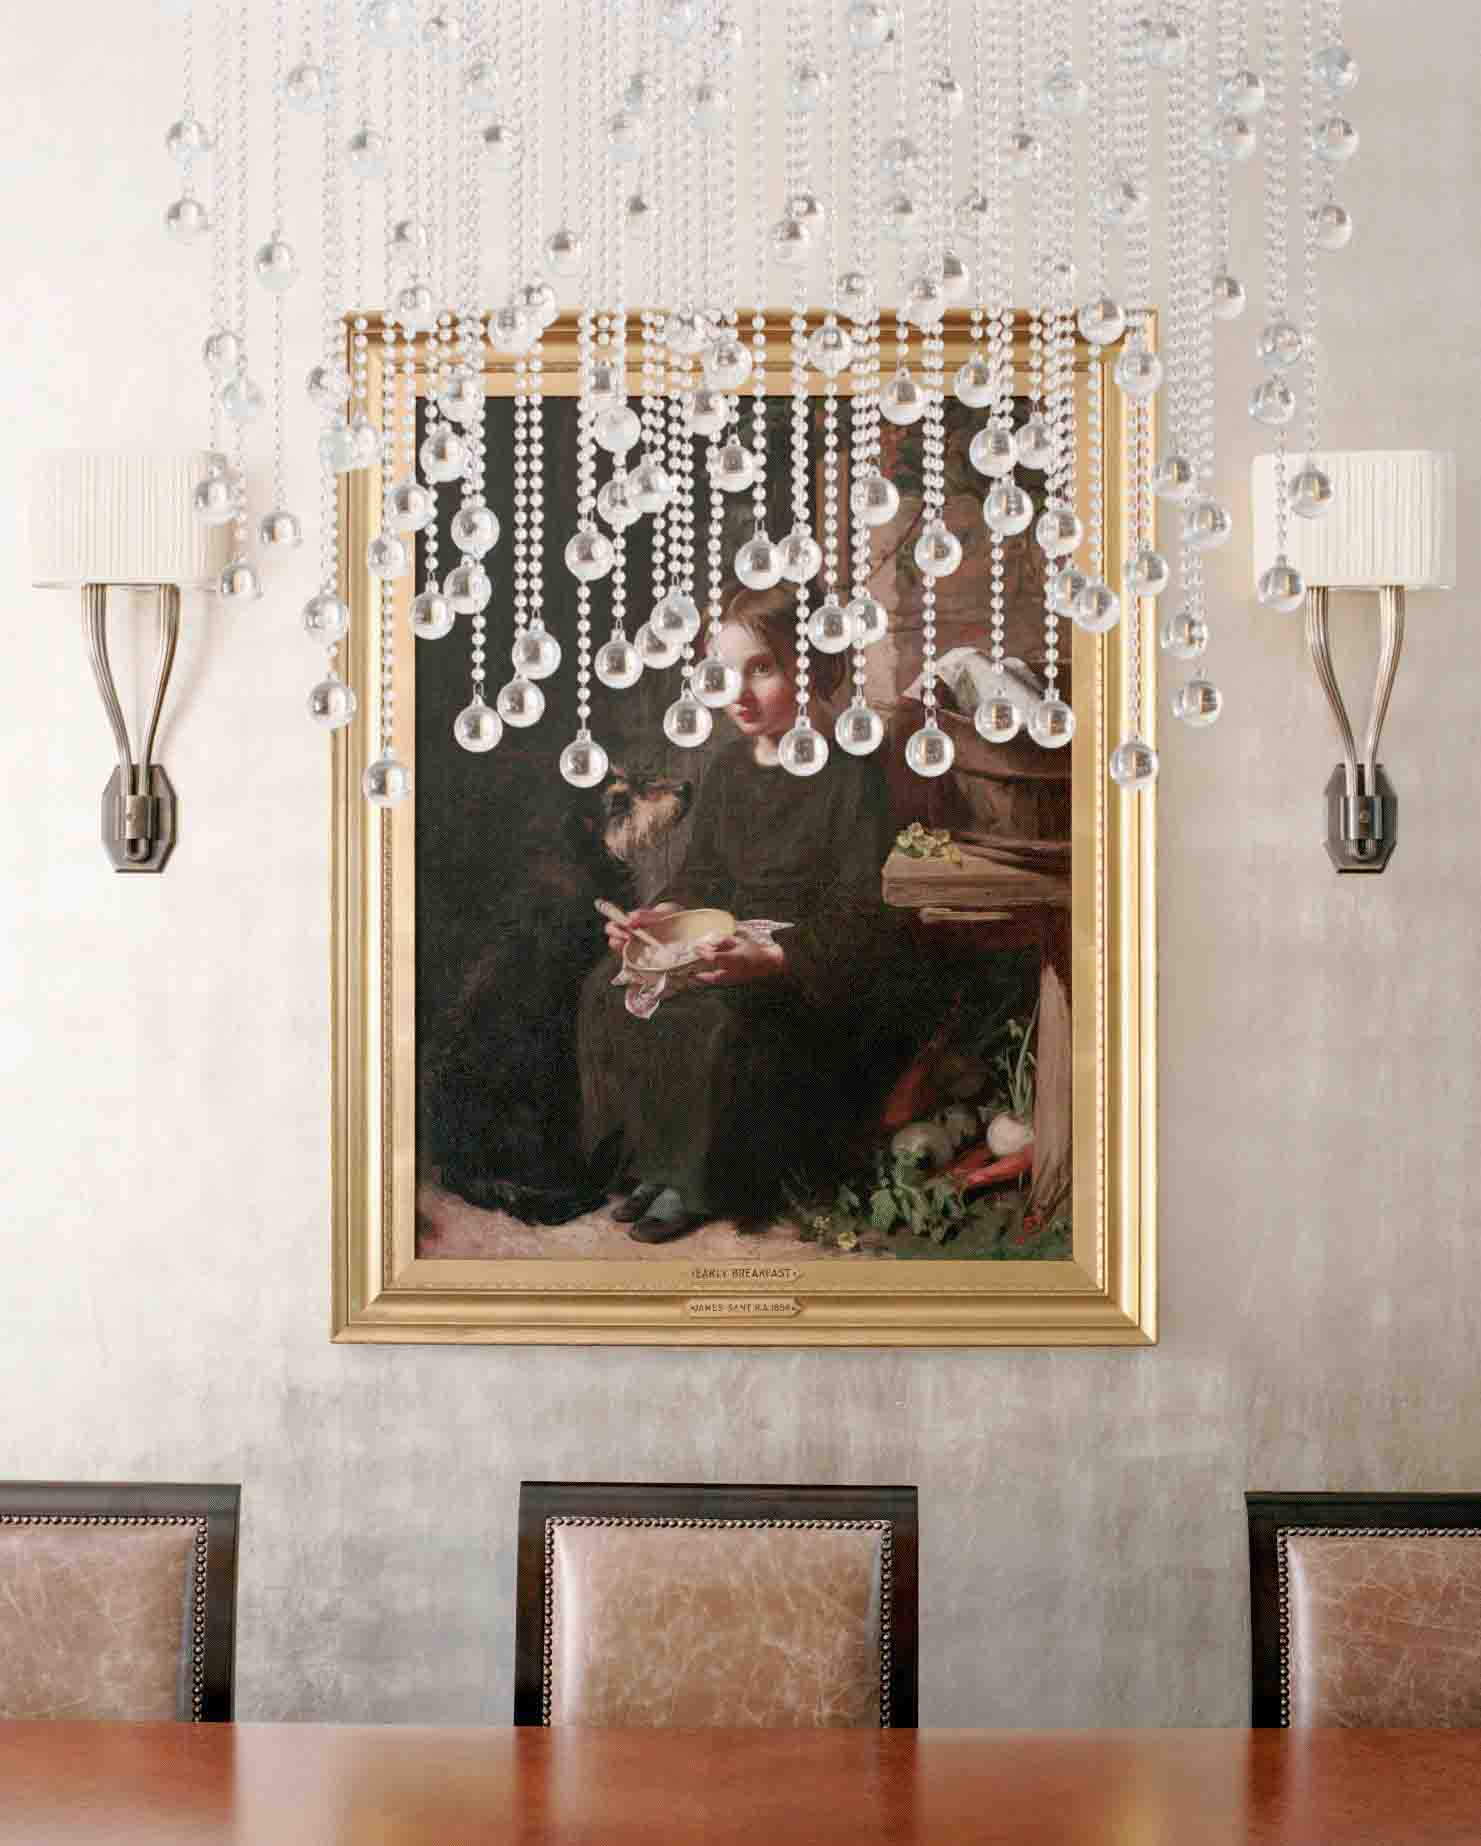 Exquisite Dining Space With Chandeier and Wall Lamps For Unique Light Fixtures